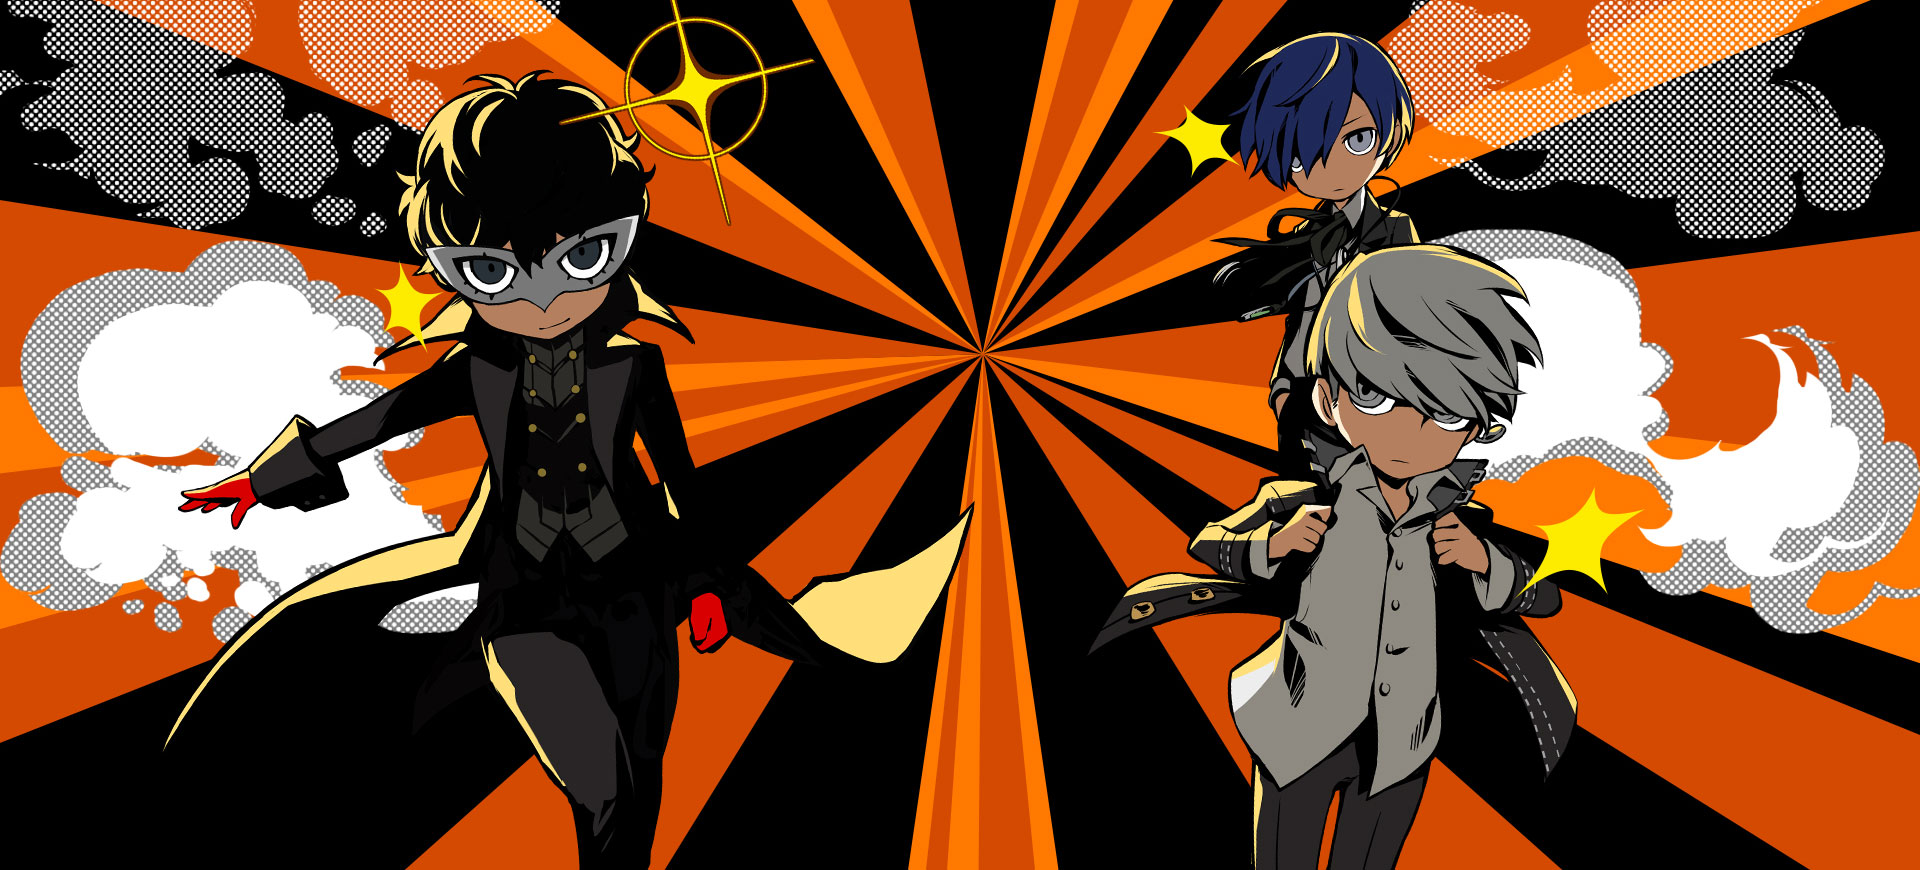 All-out Attack Generator | PQ2 - Persona Q2:New Cinema Labyrinth